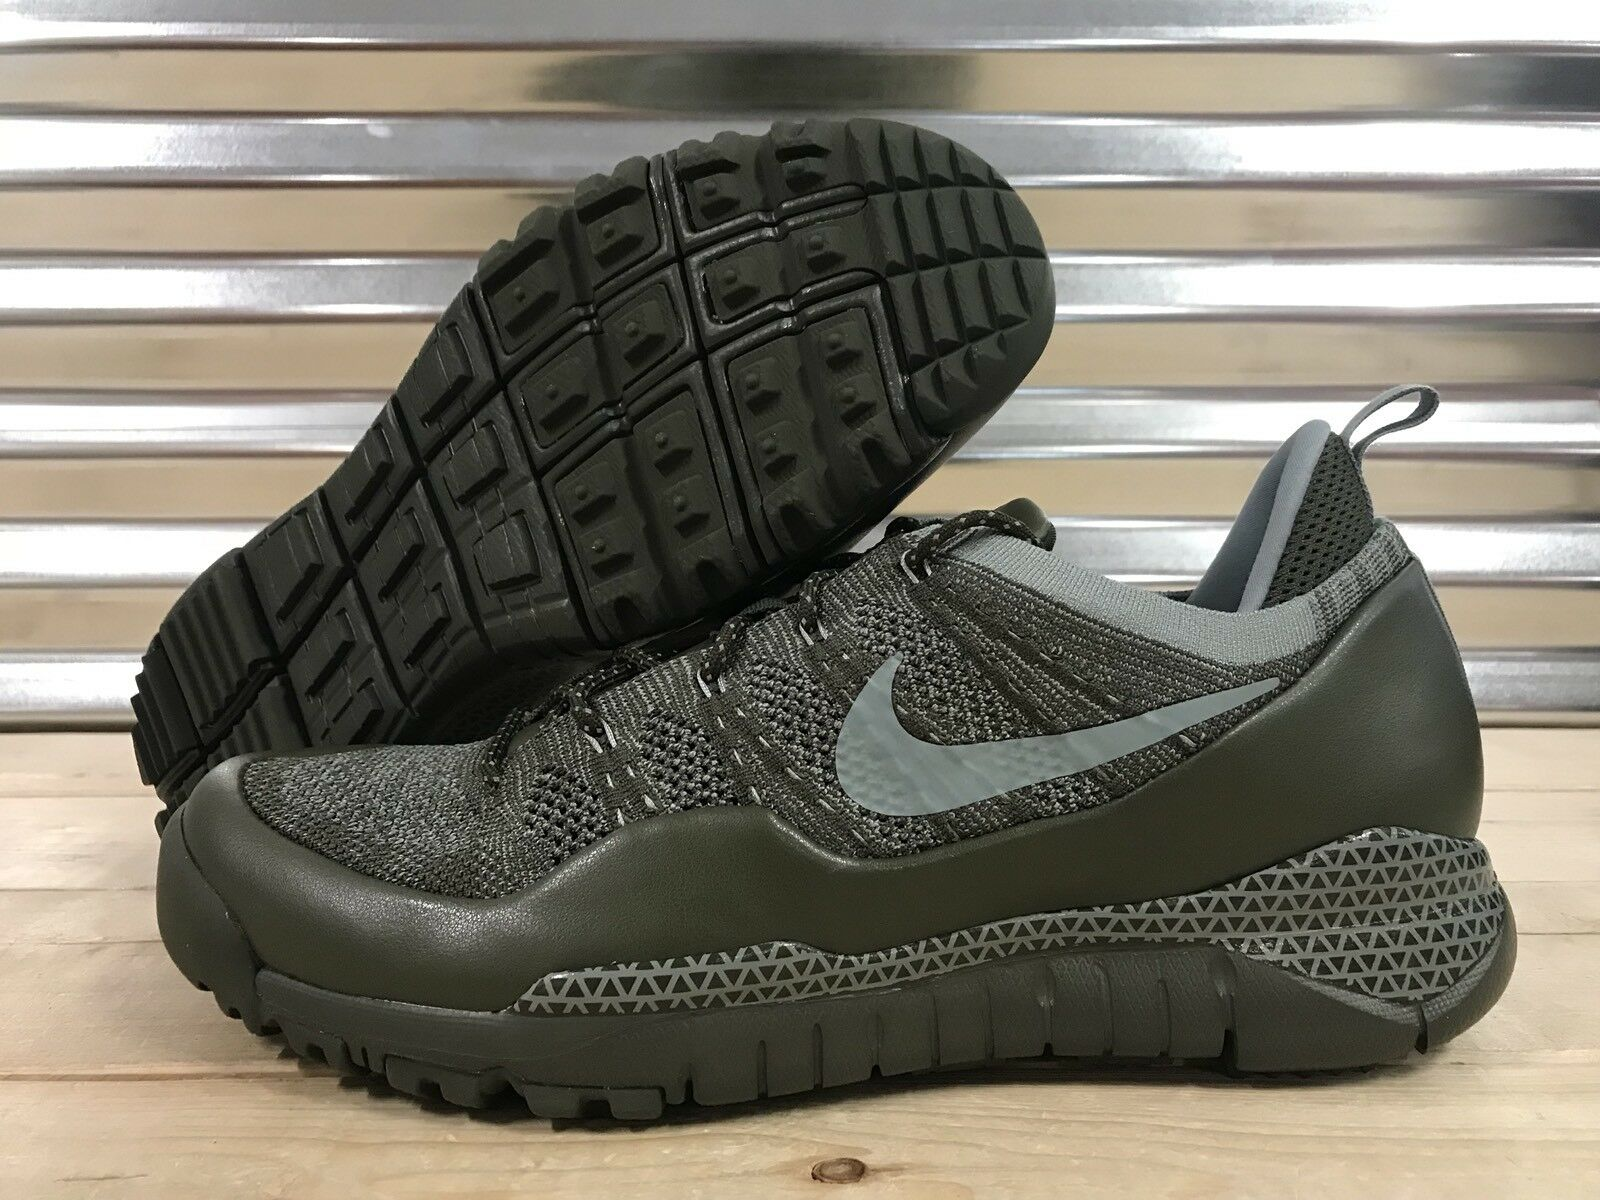 Nike Lupinek Flyknit Low Shoes Cargo Khaki Mica Green Price reduction The most popular shoes for men and women